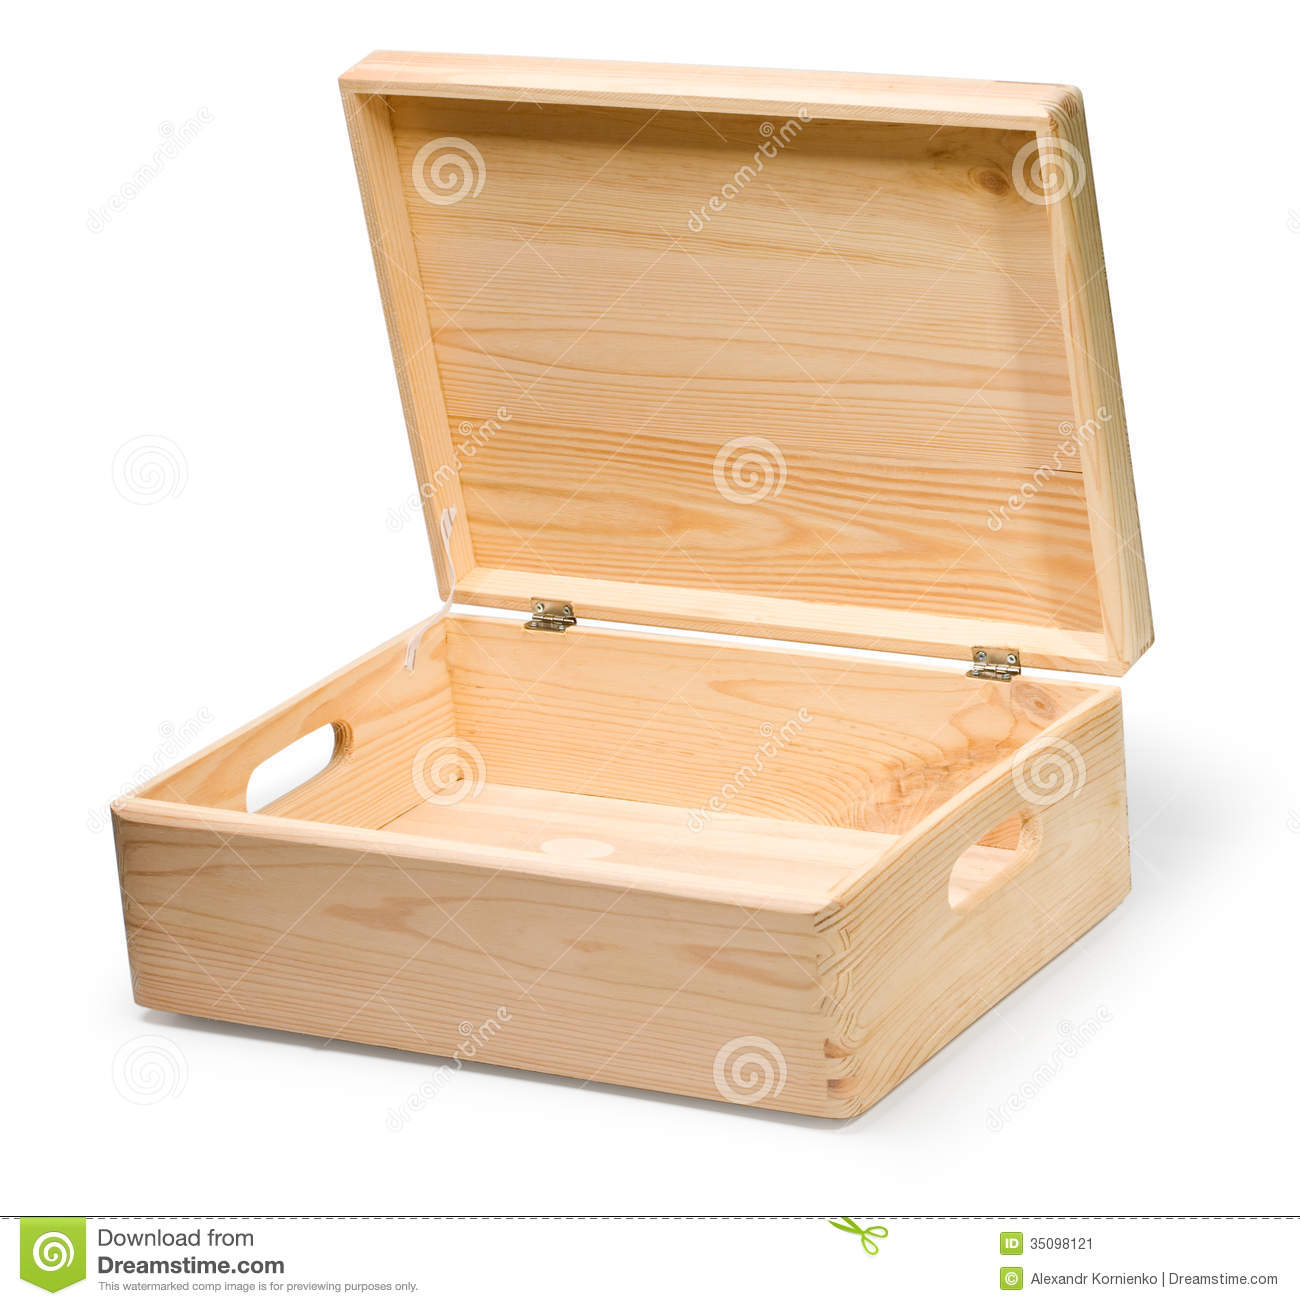 Wooden box on white background with clipping path.